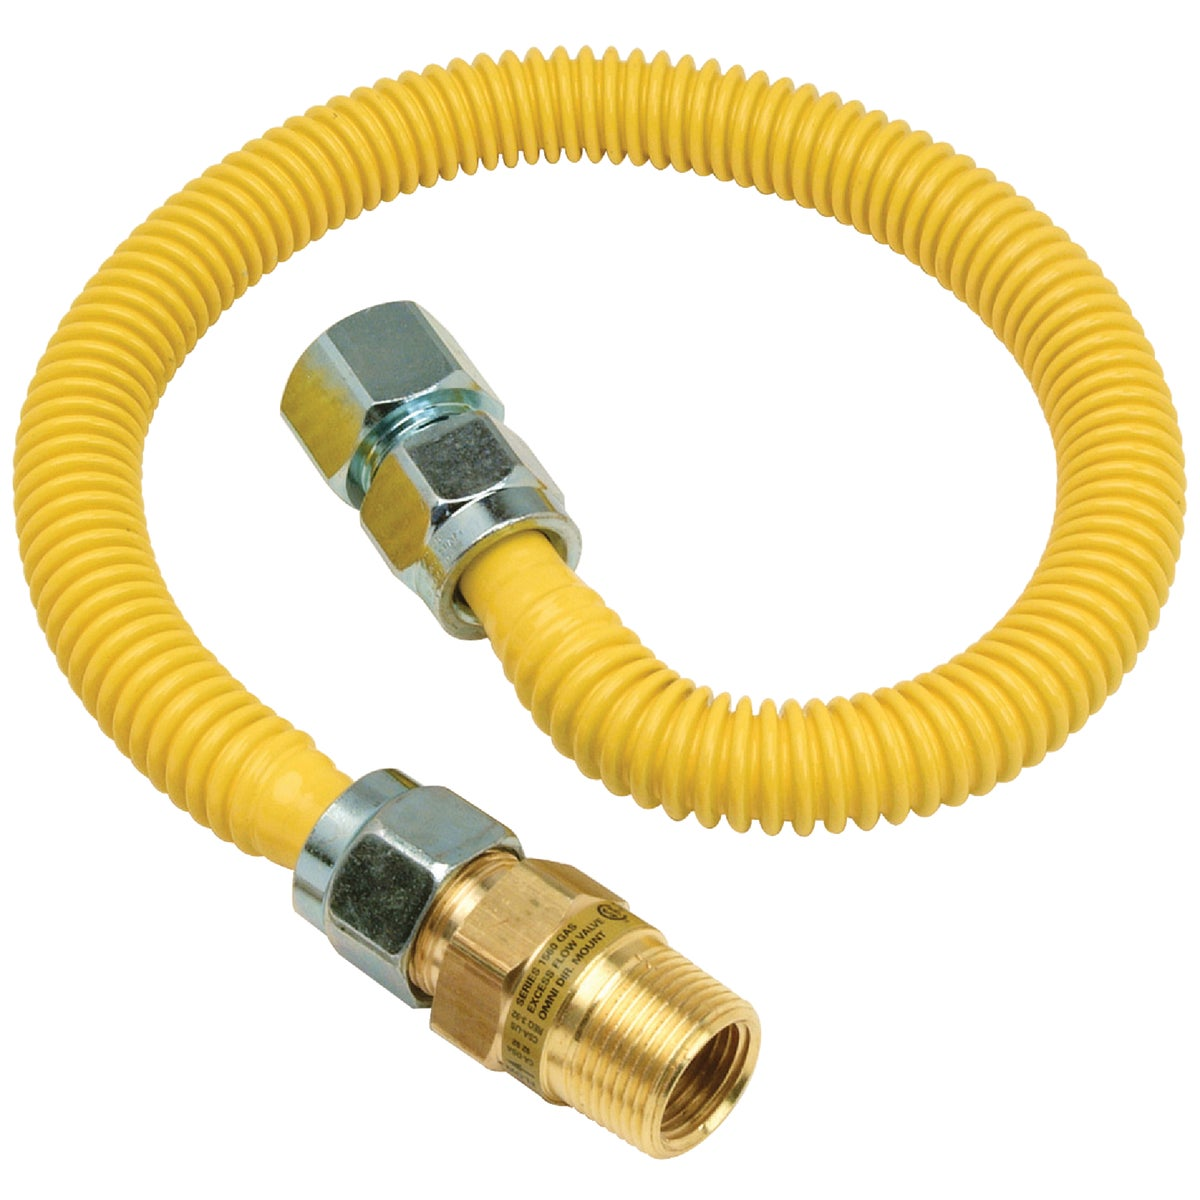 3/4X3/4-36 GAS CONNECTOR